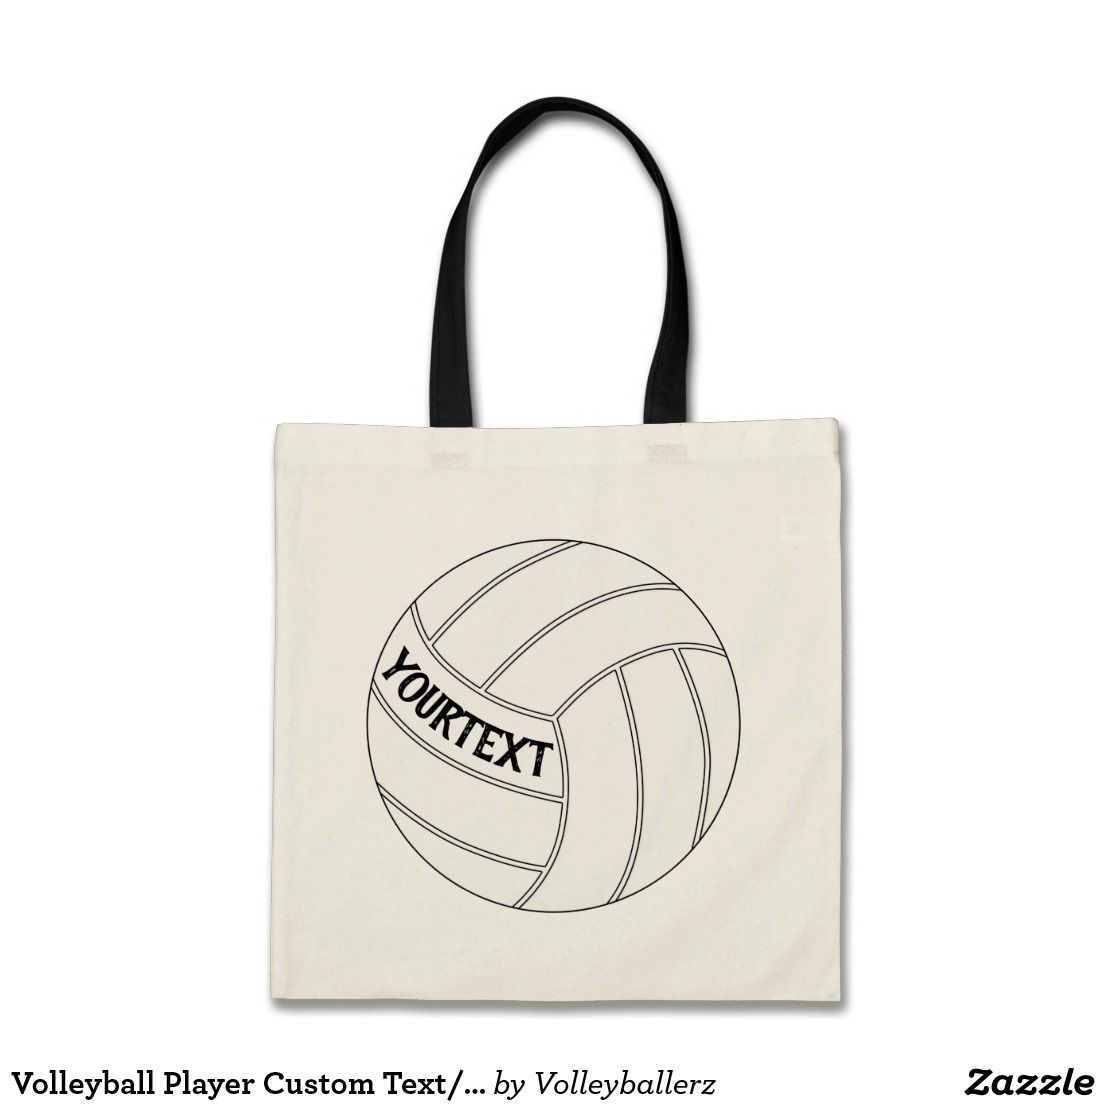 Volleyball Player Custom Text Team Name Tote Bag Zazzle Com Volleyball Bag Tote Bag Bags